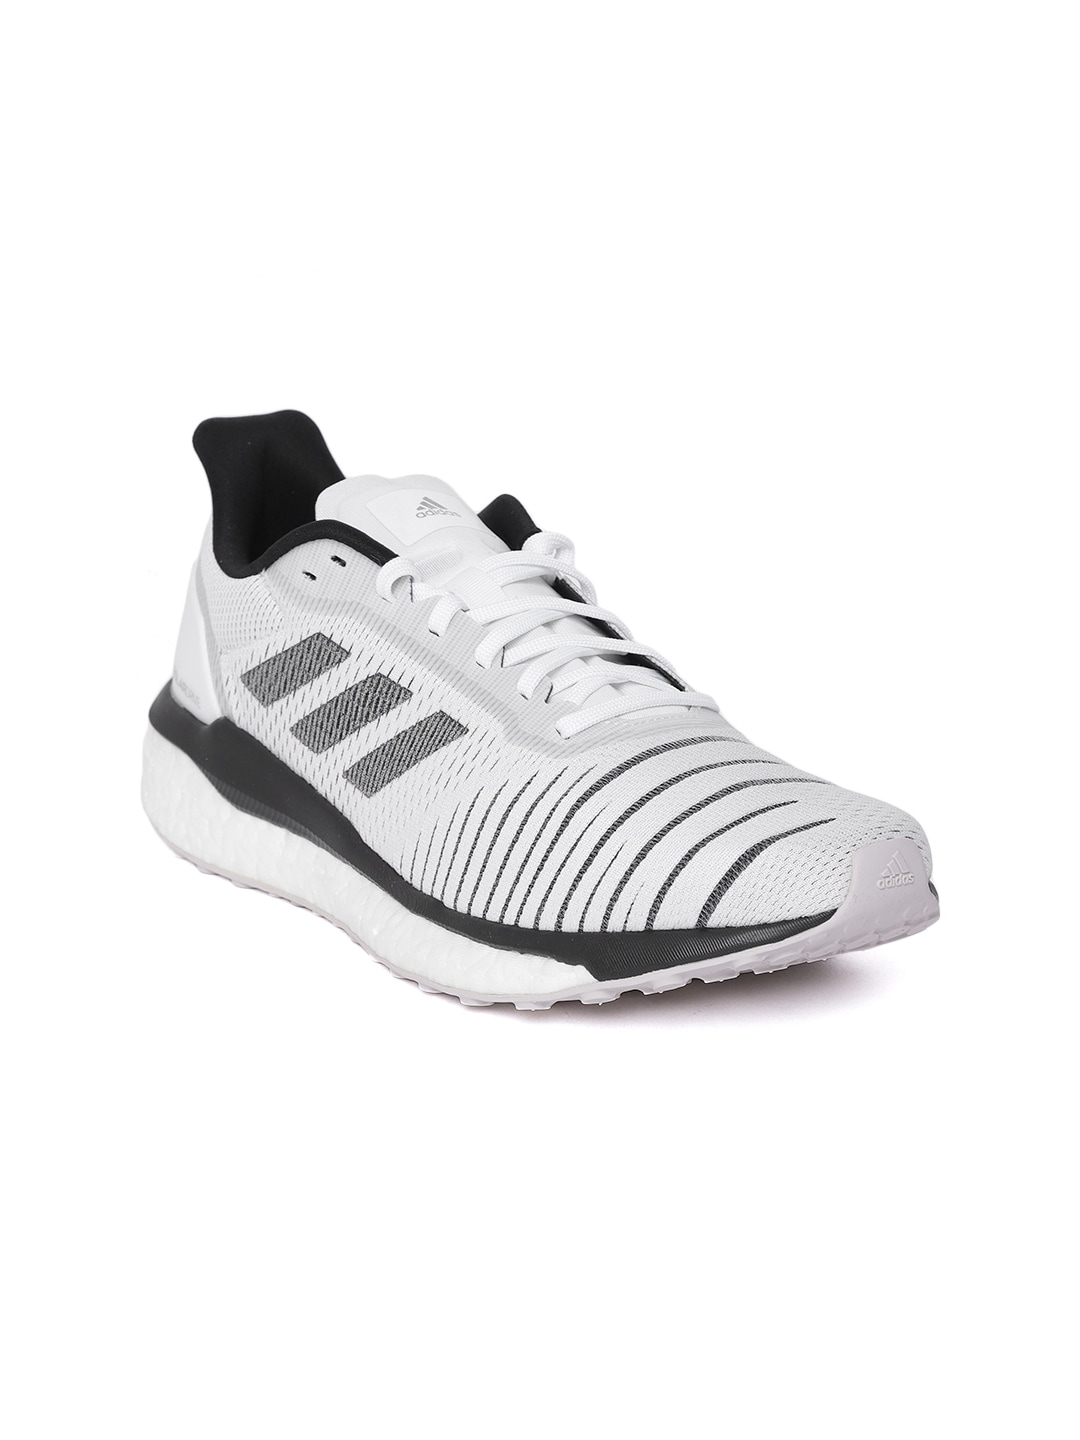 hot sales ca2ce c68fb Adidas Running Shoes - Buy Adidas Running Shoes Online   Myntra